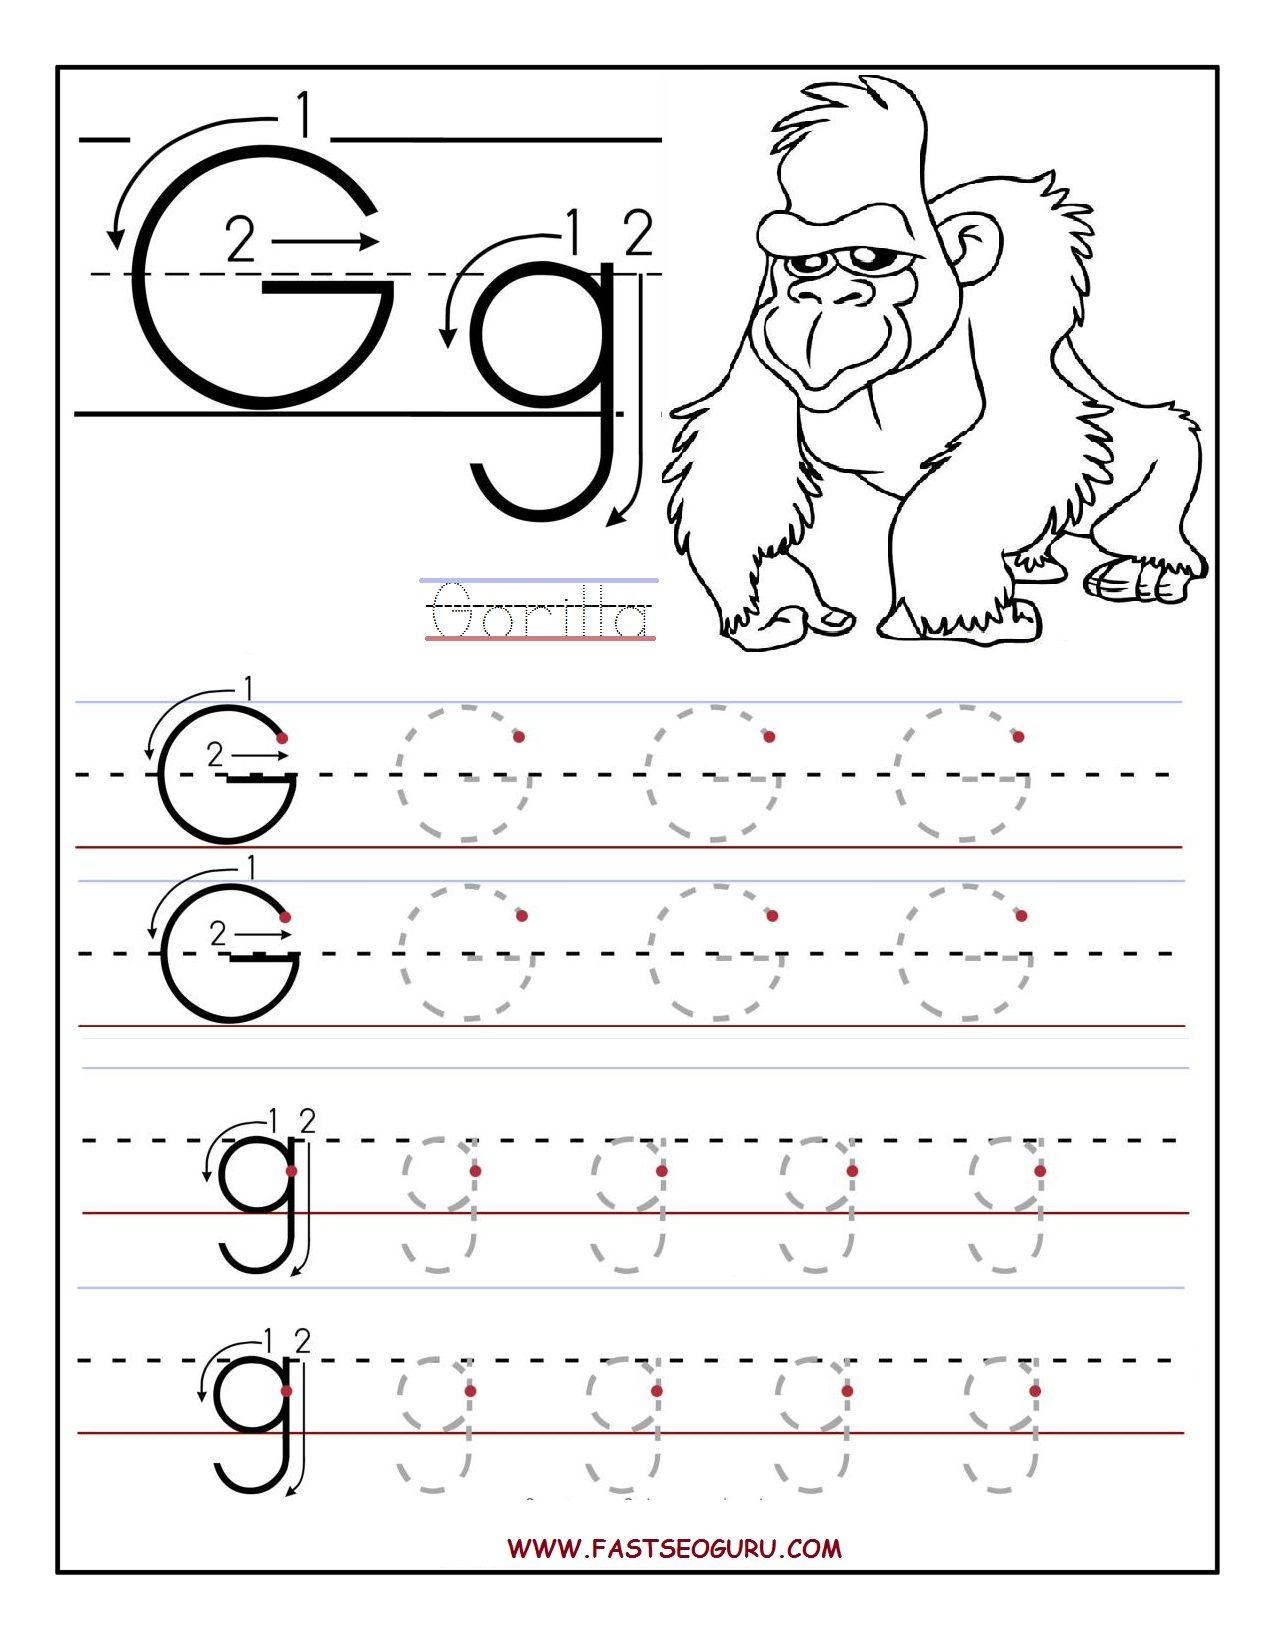 Printable Letter G Tracing Worksheets For Preschool | 파닉스